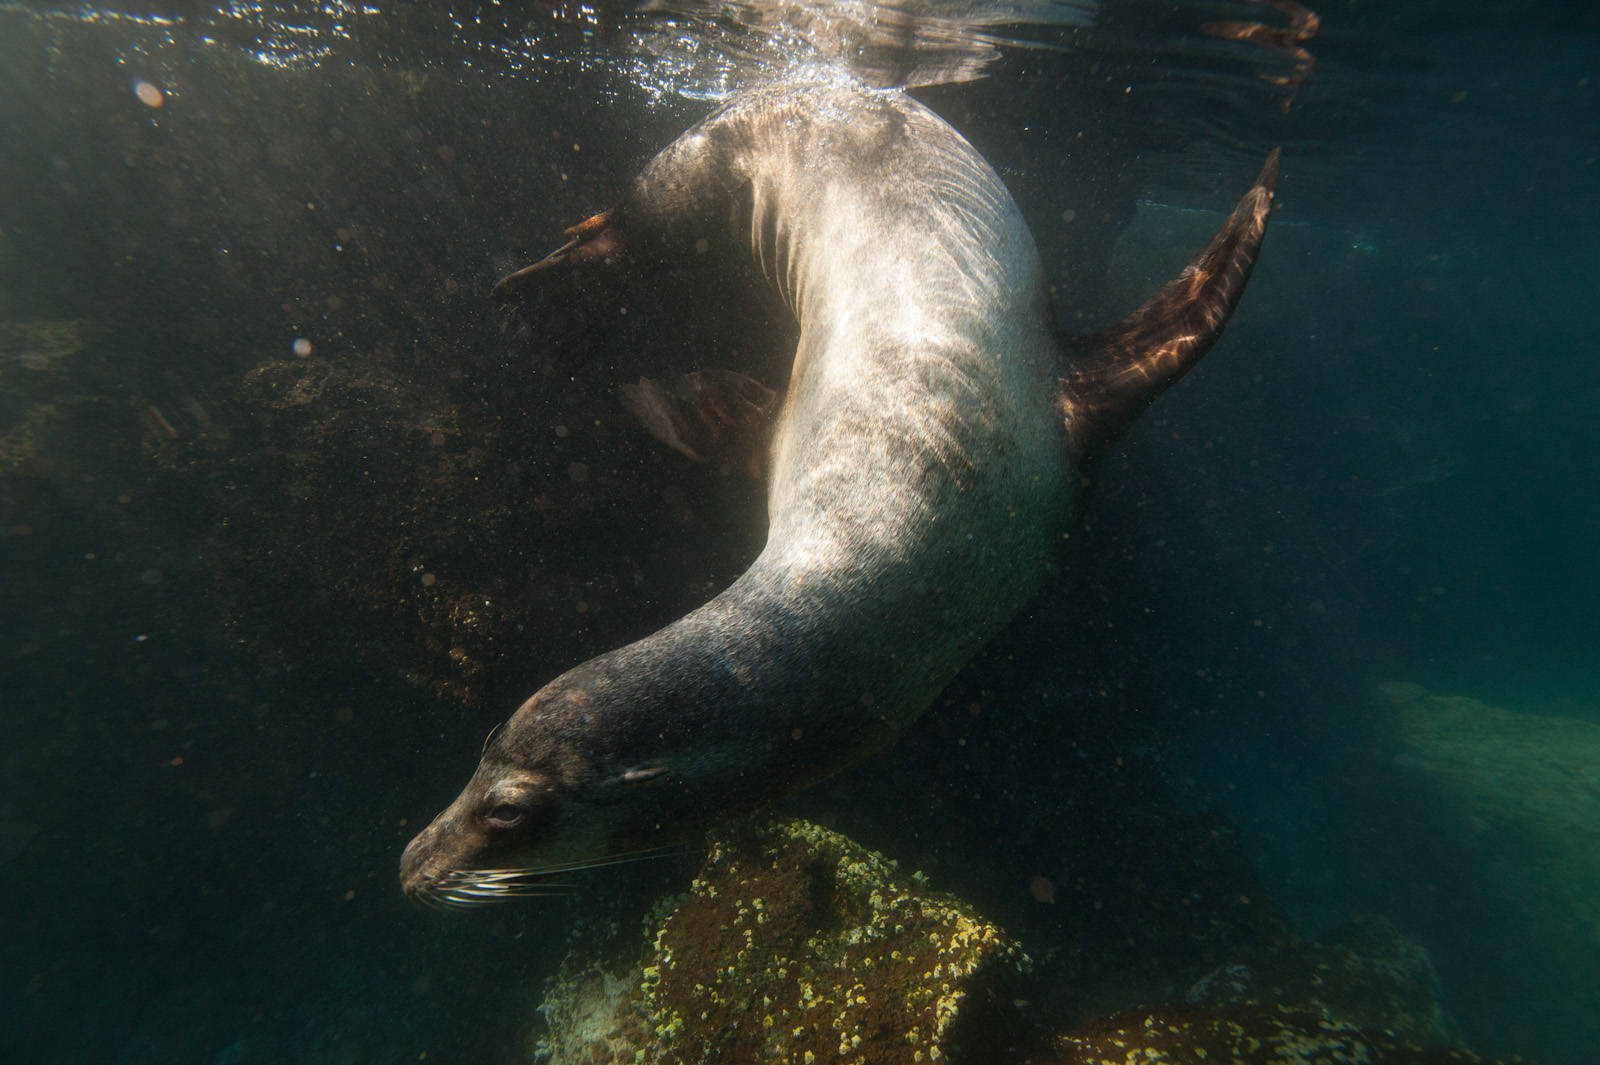 Photo: A Galapagos sea lion (Zalophus wollebaeki) in Galapagos National Park.